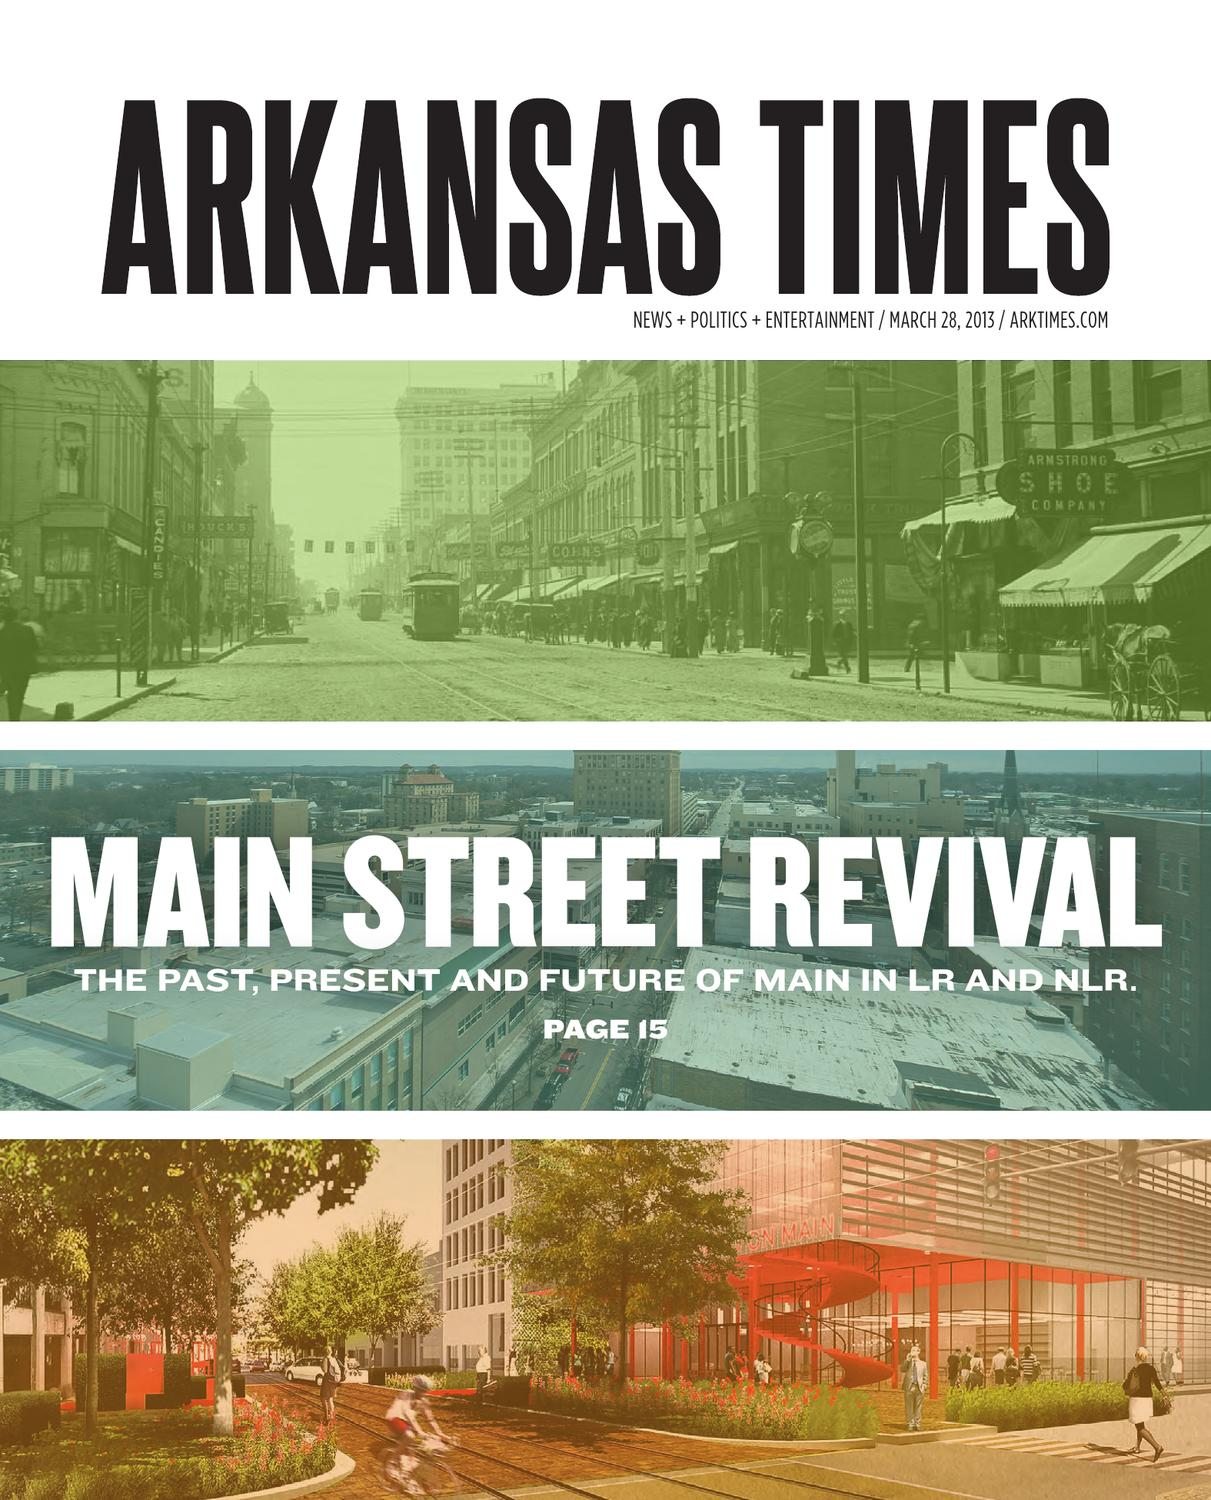 Arkansas times by arkansas times issuu fandeluxe Image collections